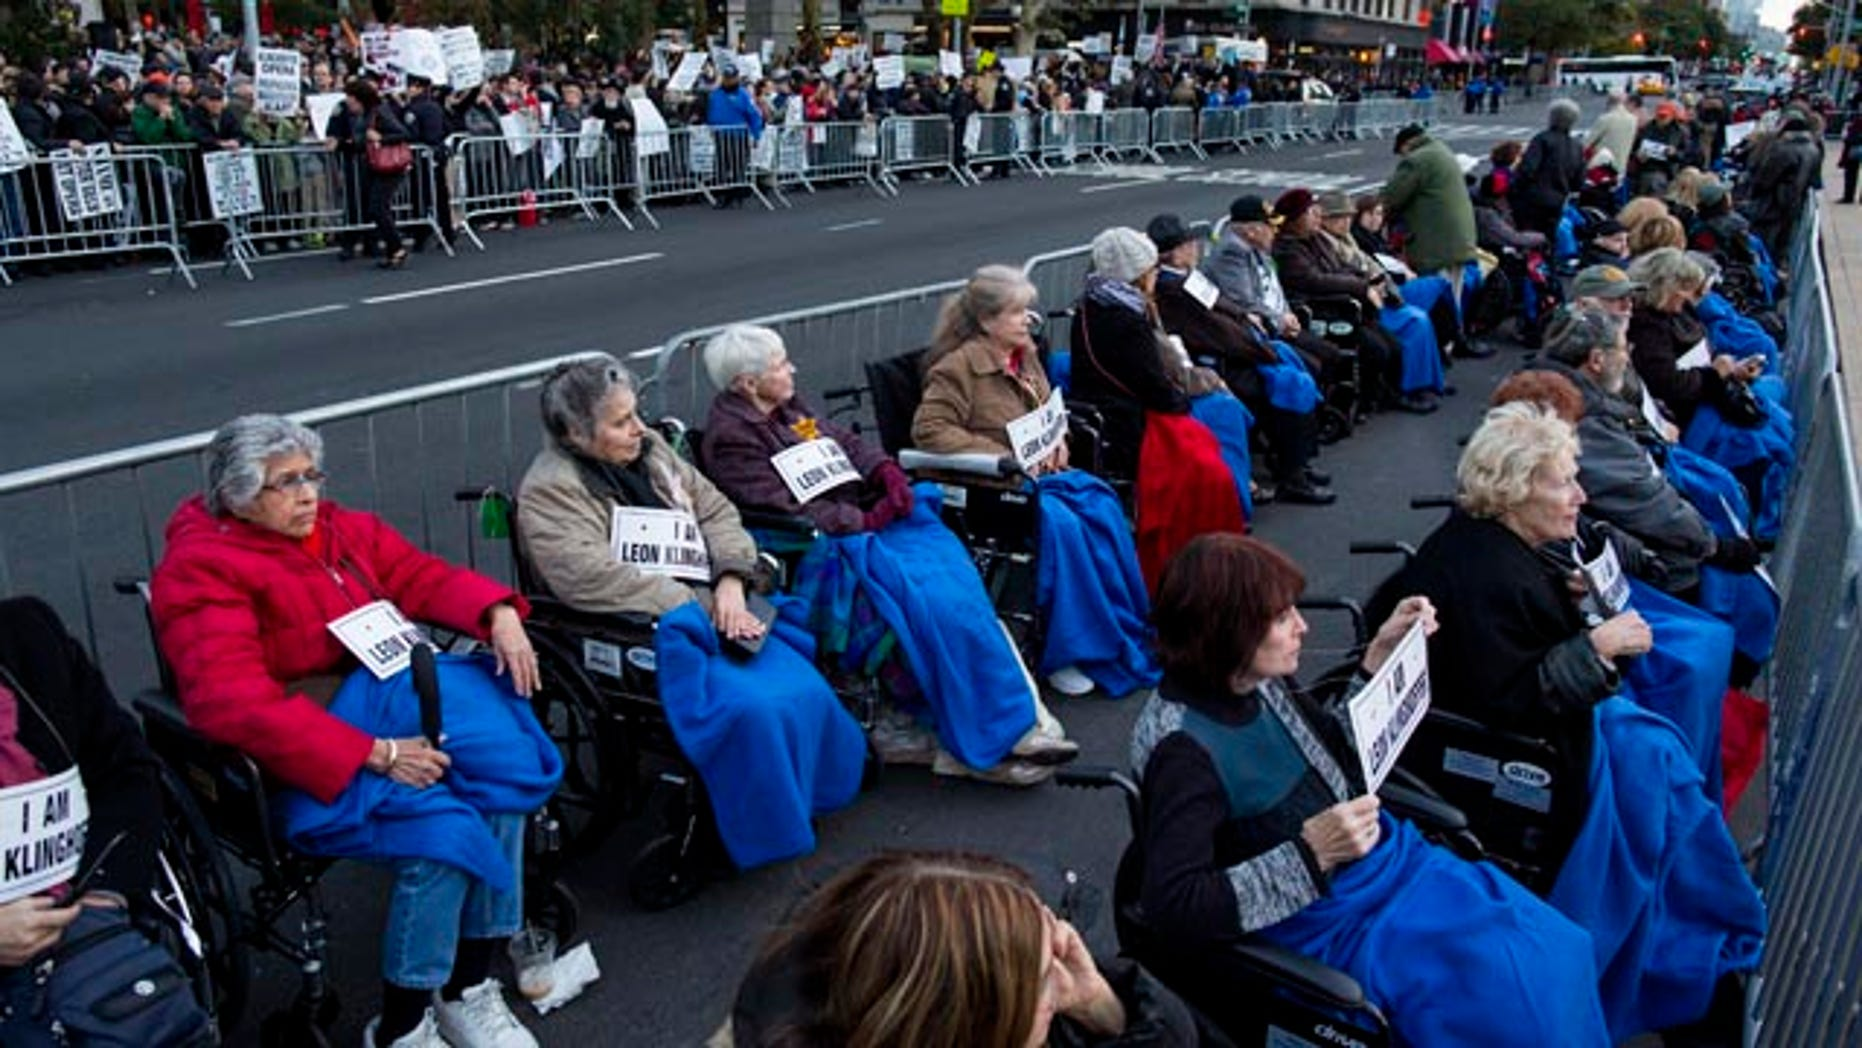 October 20, 2014: A long line of people in wheelchairs gather at Lincoln Center as they protest 'Death of Klinghoffer' in New York. (AP Photo/Craig Ruttle)